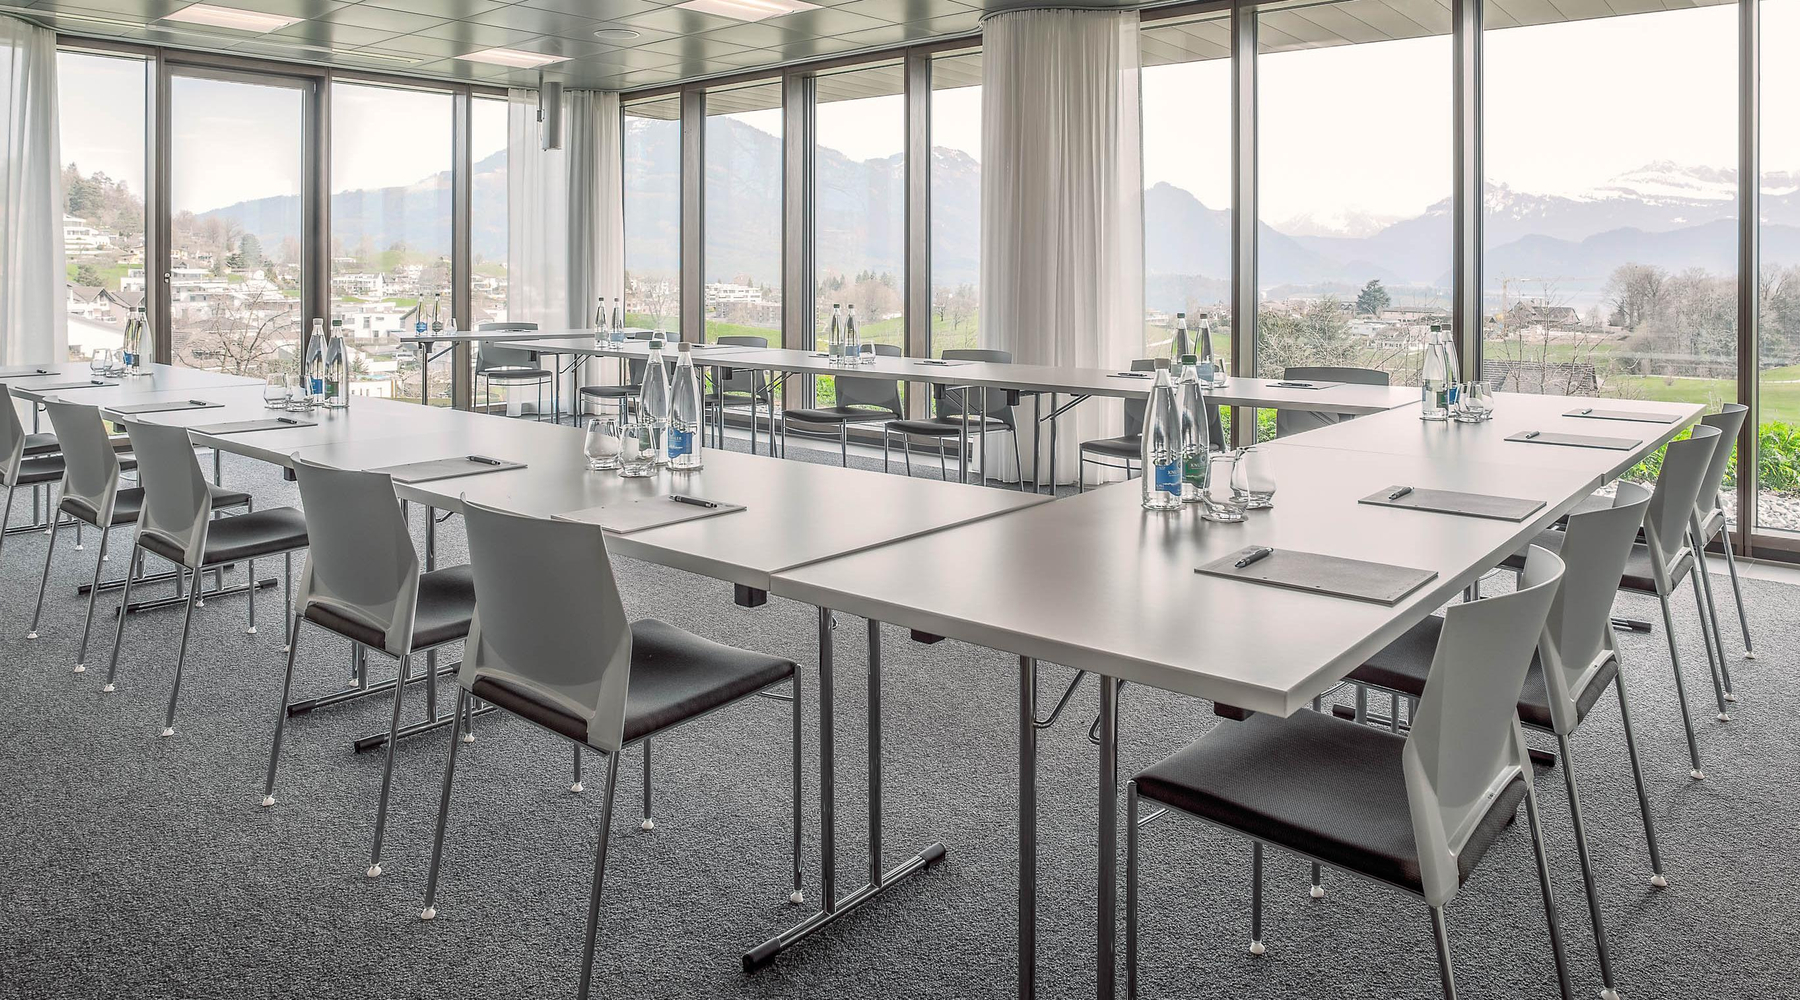 <span class='cycle-icon MEETINGS'></span><span class='cycle-title'>MEETINGS</span><span class='cycle-subtitle'>The modern seminar rooms offer the best conditions for successful seminars, meetings and presentations</span>